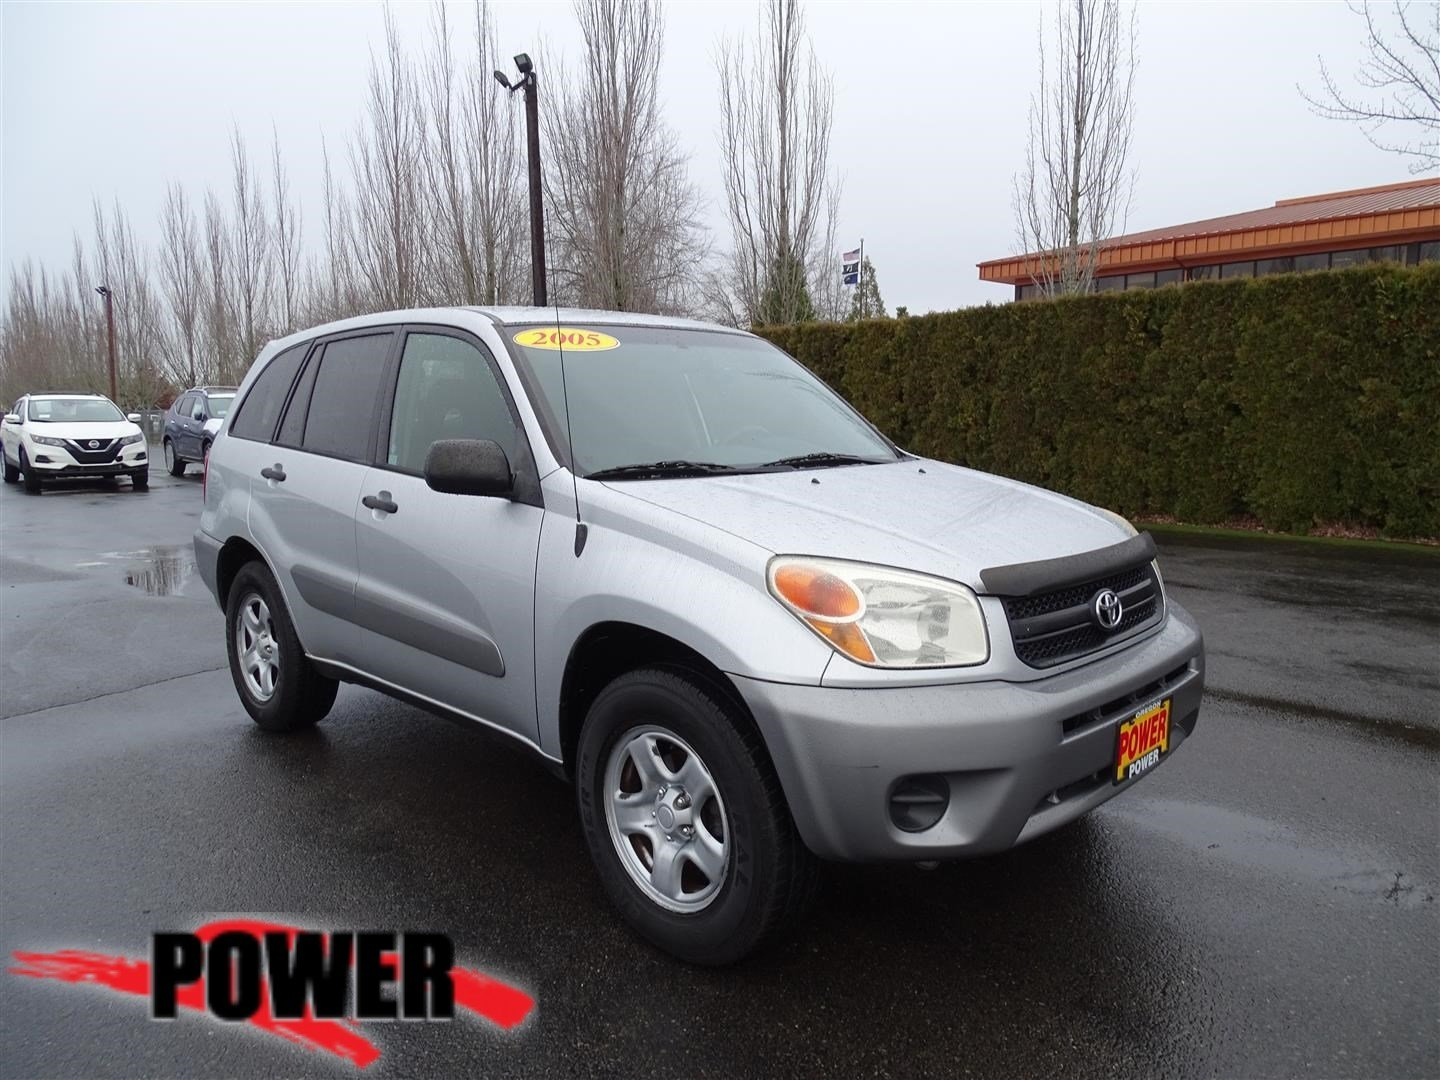 Pre-Owned 2005 Toyota RAV4 4DR 2WD MT